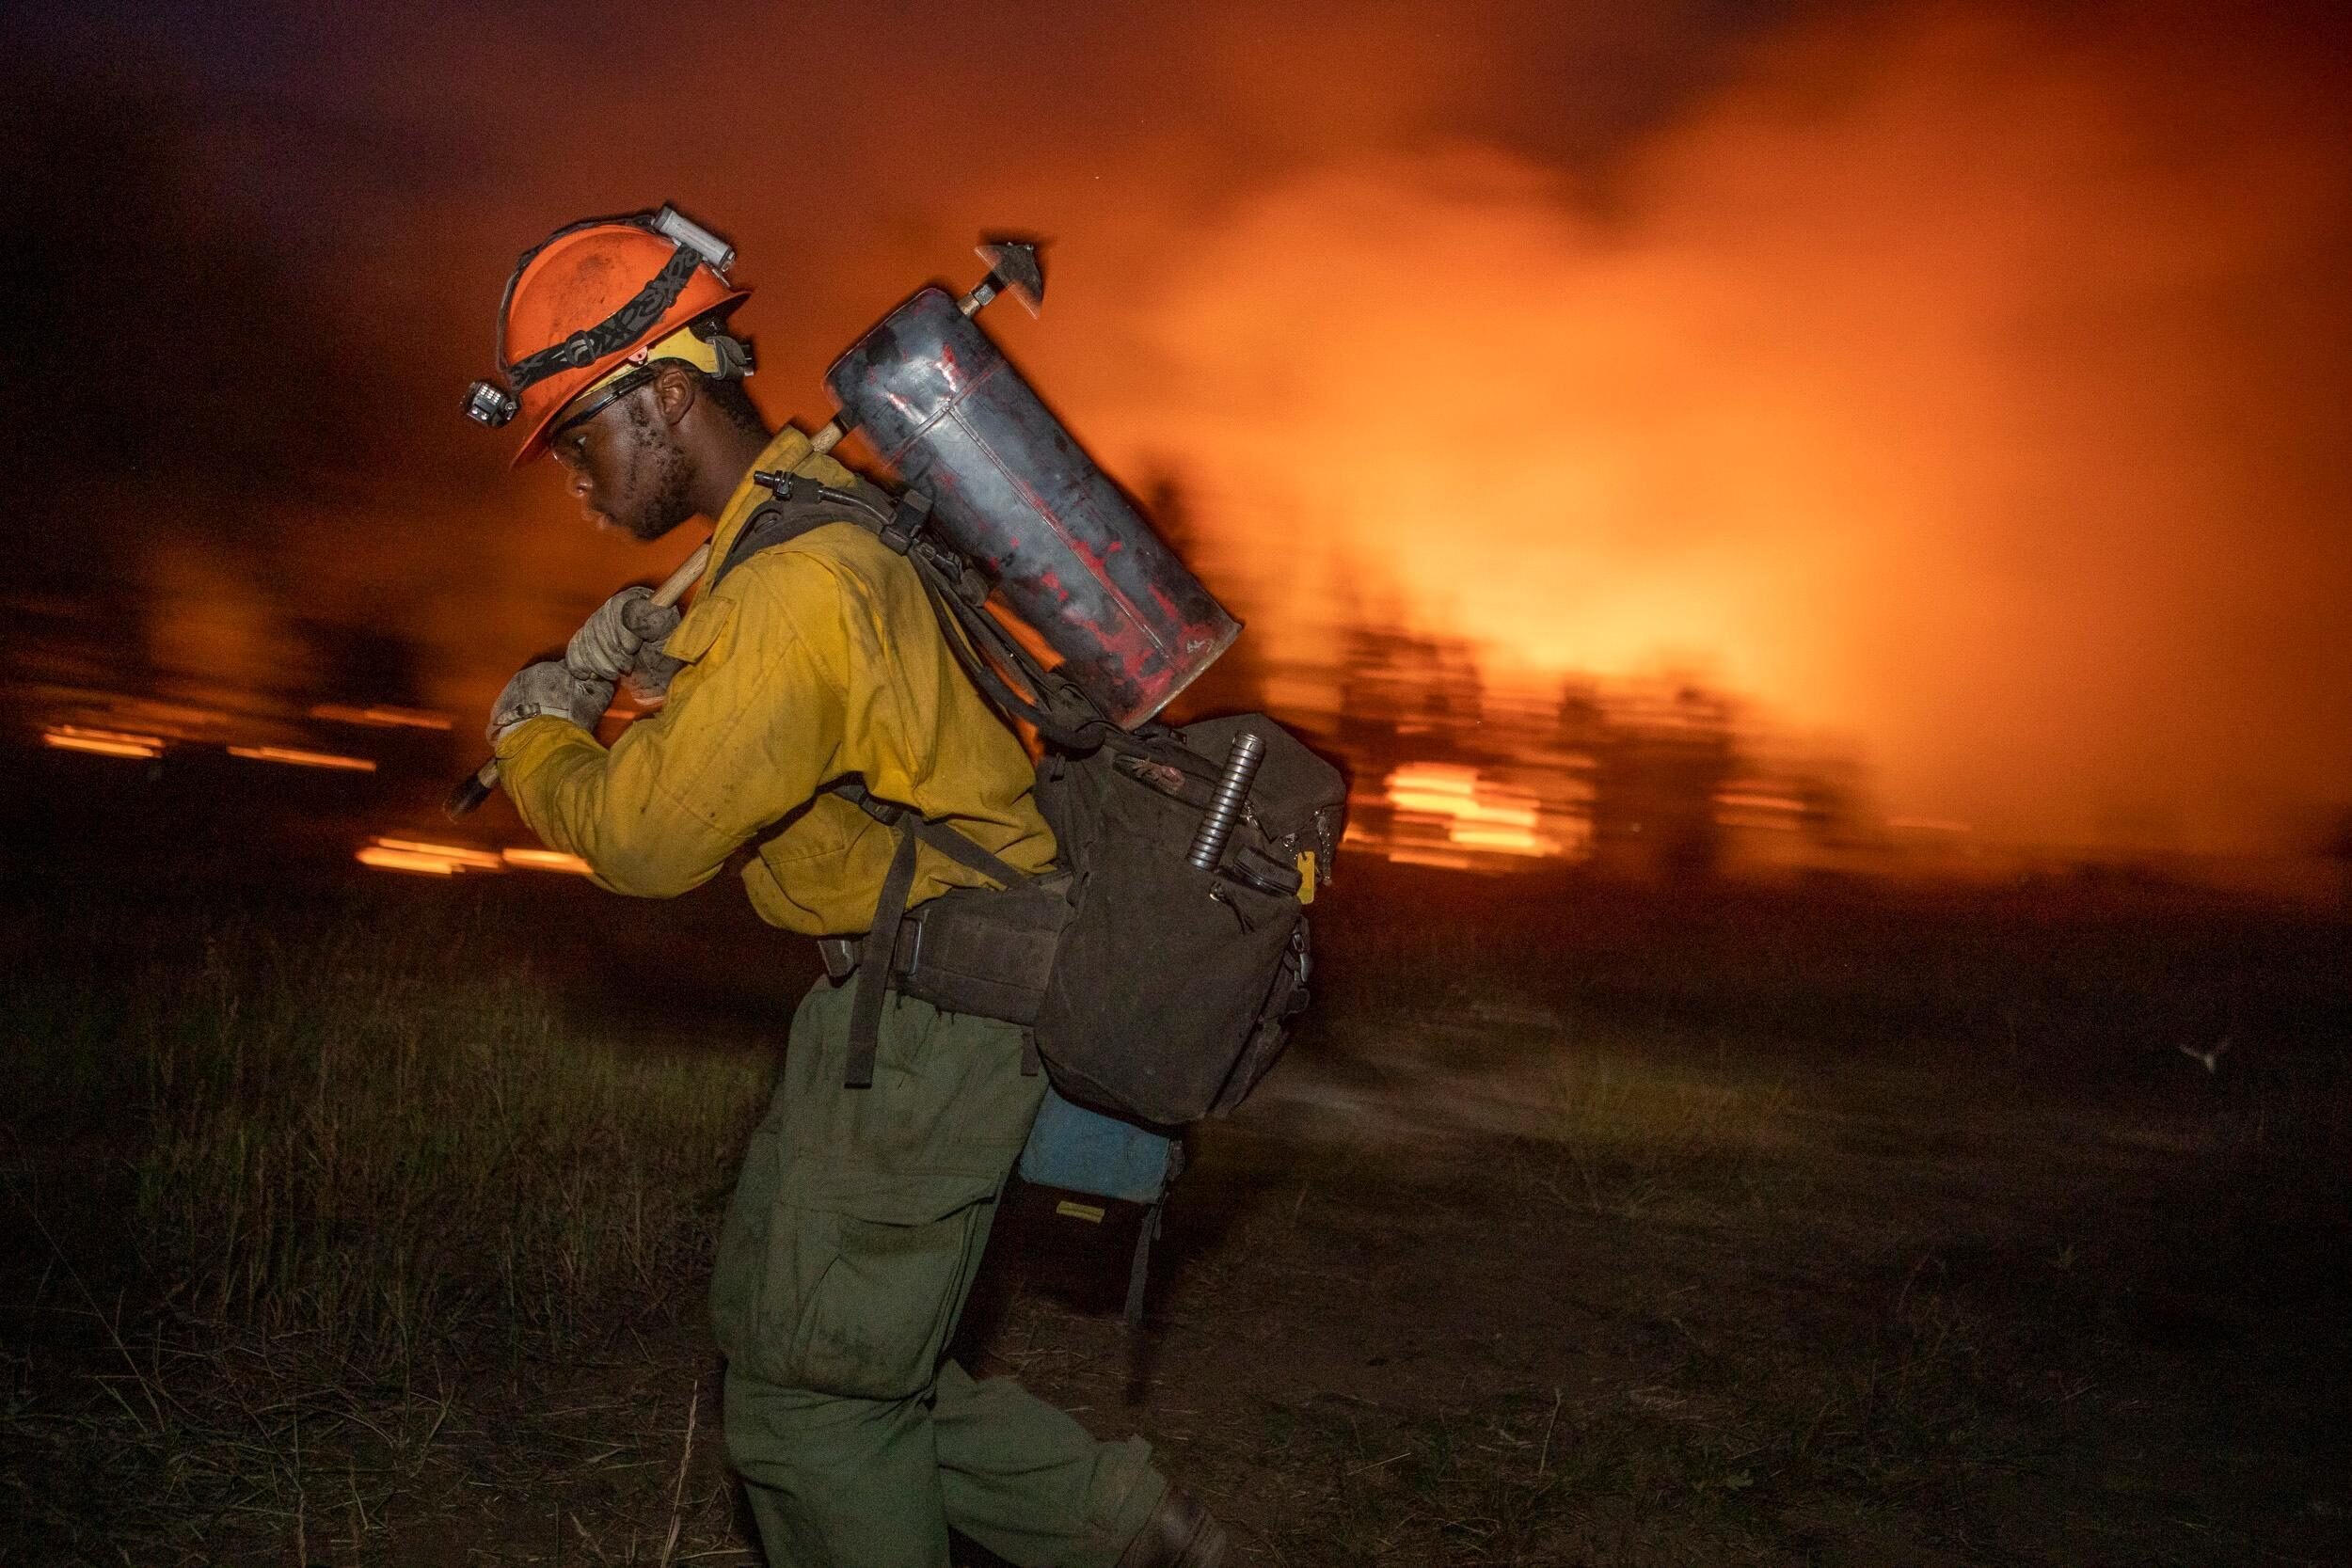 A Roosevelt Hotshot crew member carries fuel along the containment line as the burning operation progresses on the Williams Fork Fire. Aug. 24.